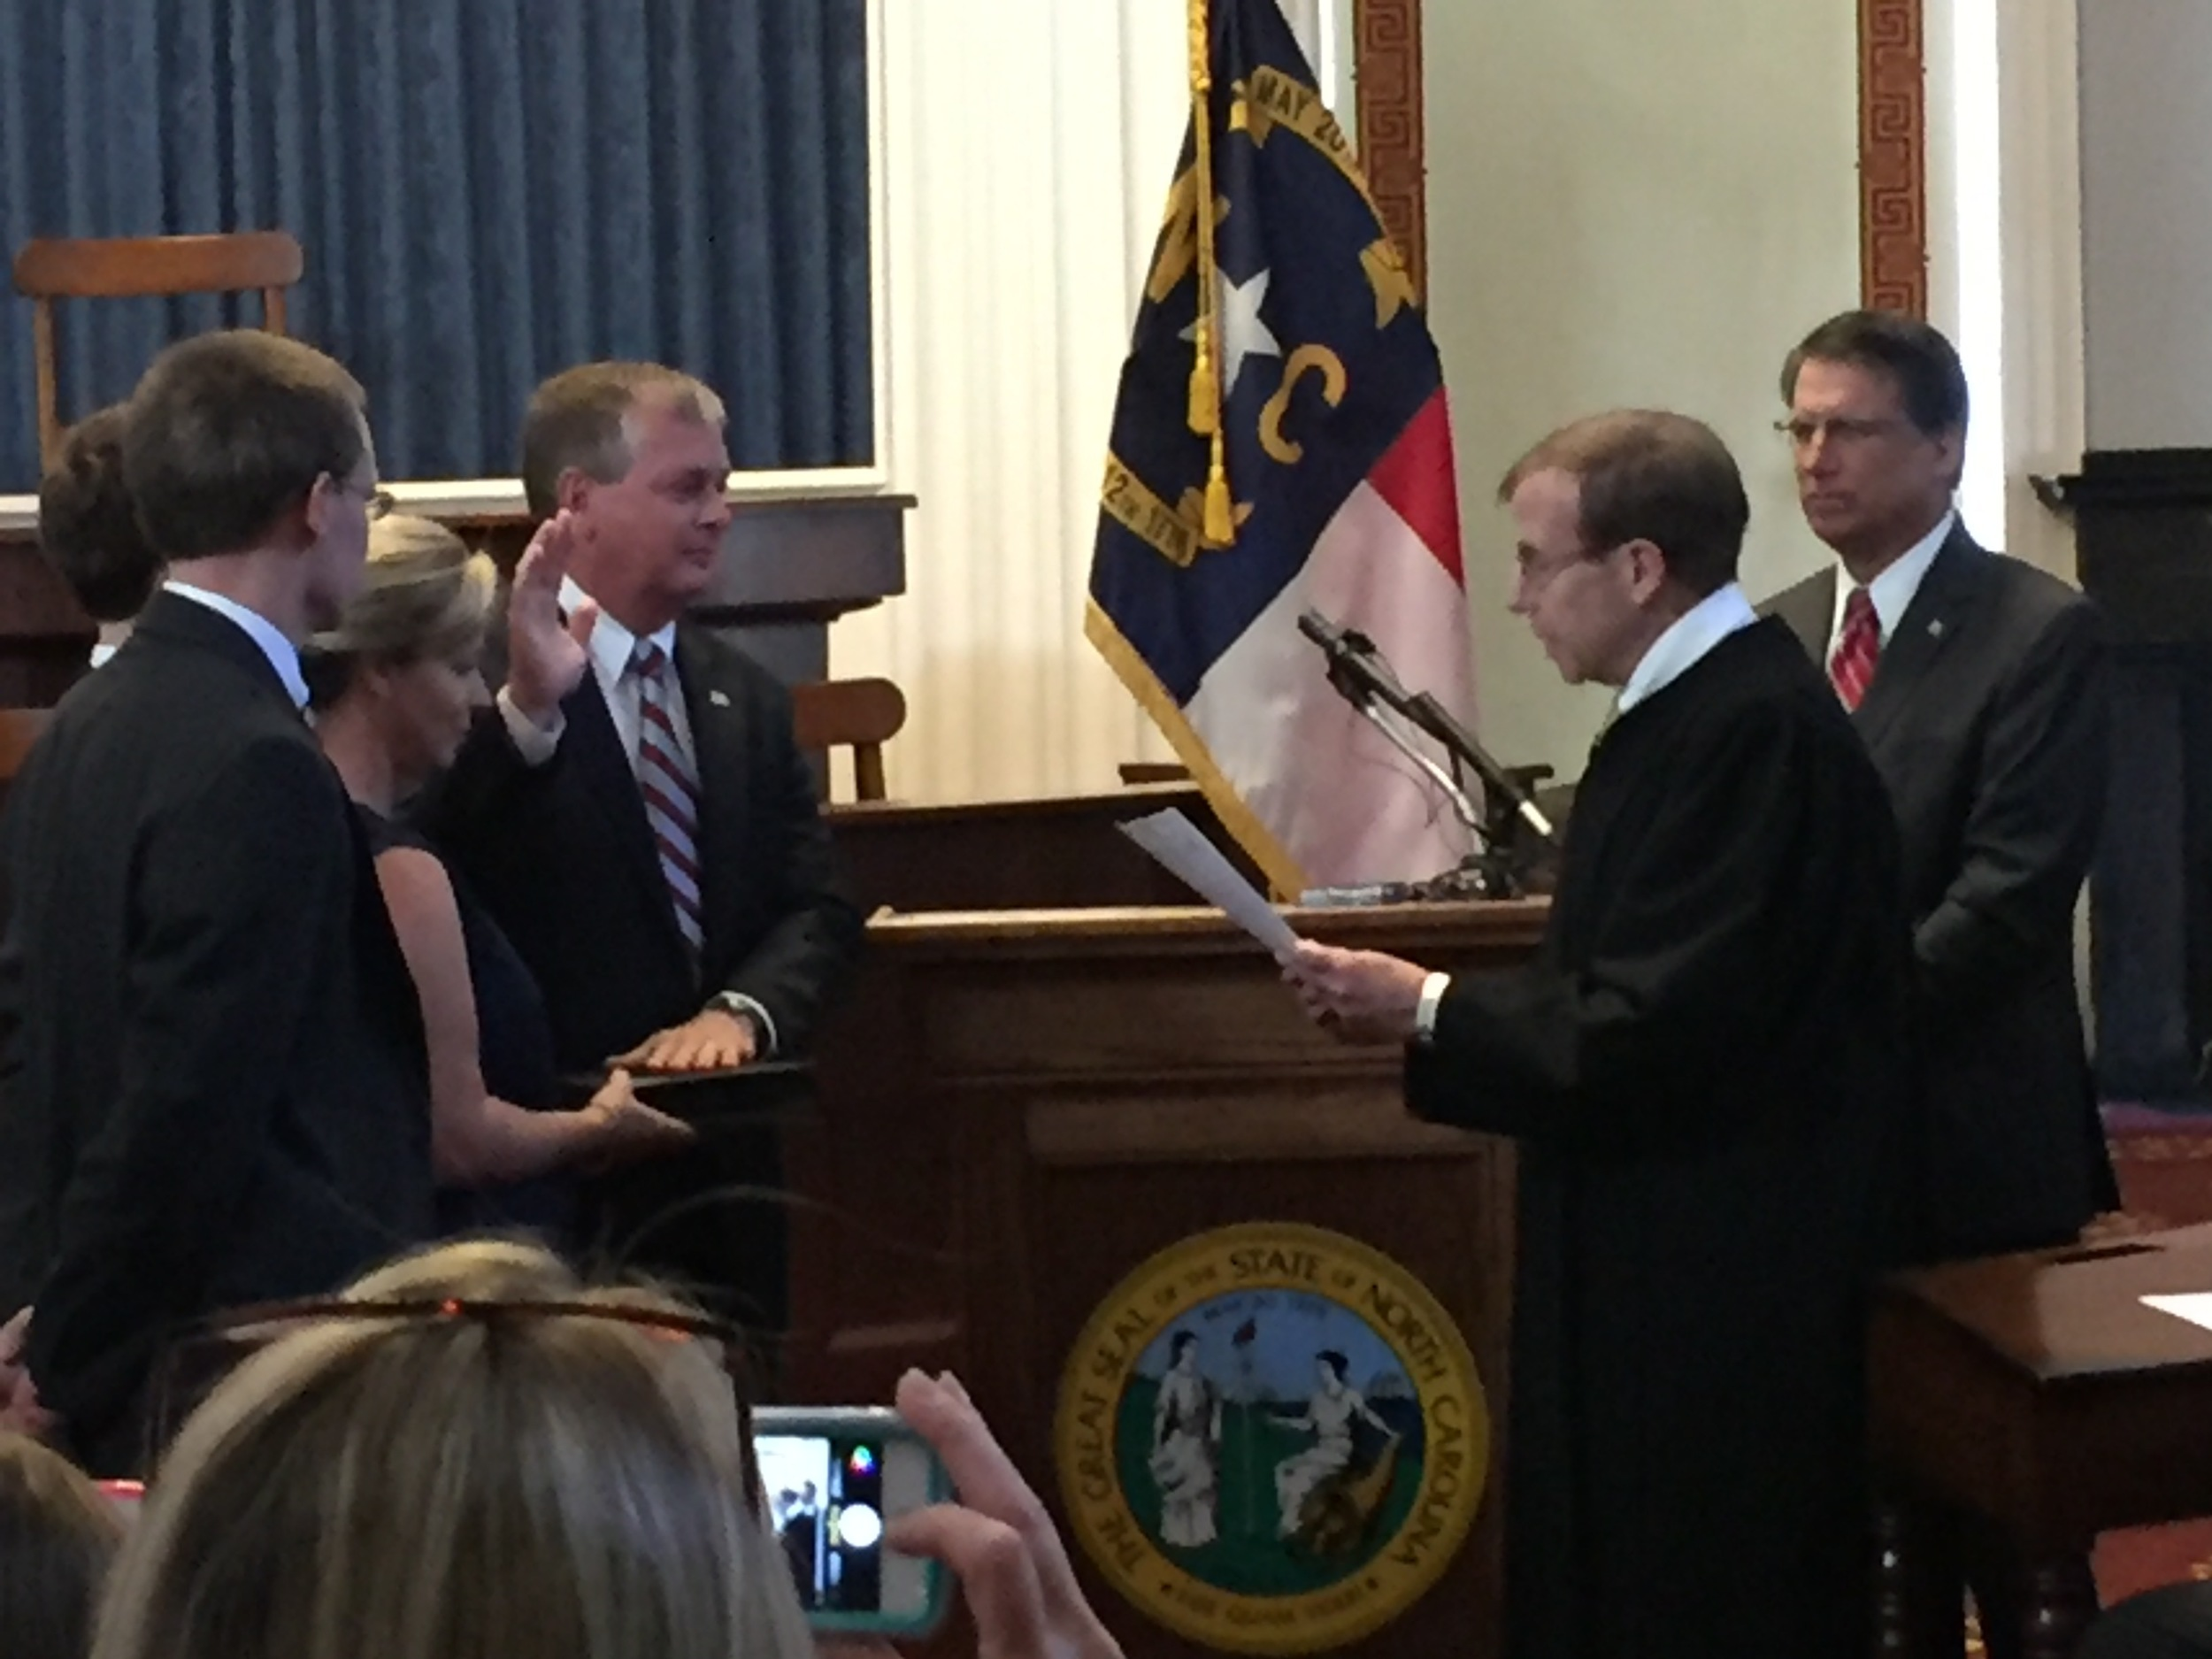 Justice Edmunds administers oath of office to Chris Estes, State Chief Information Officer, 20 October 2015.